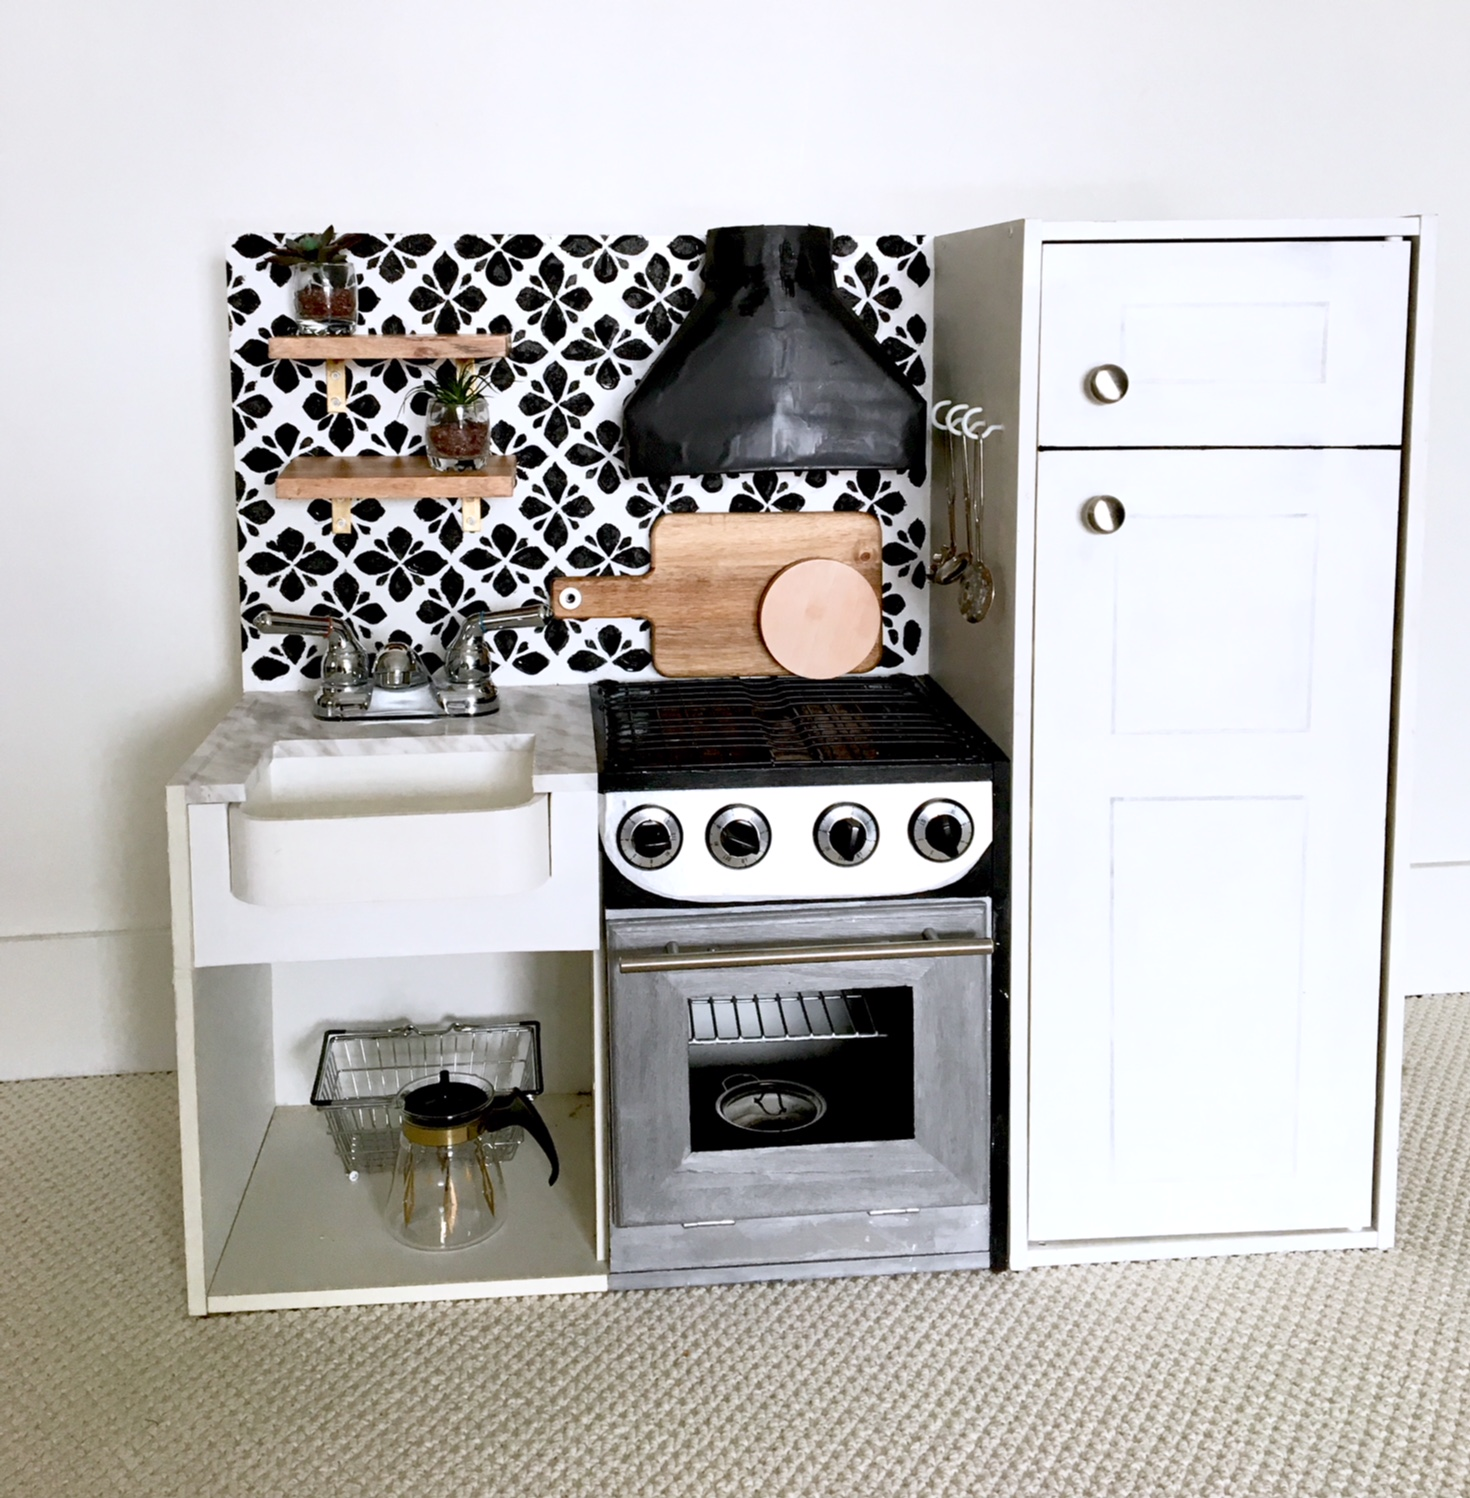 DIY-play-kitchen-remodel-harlow-and-thistle-3